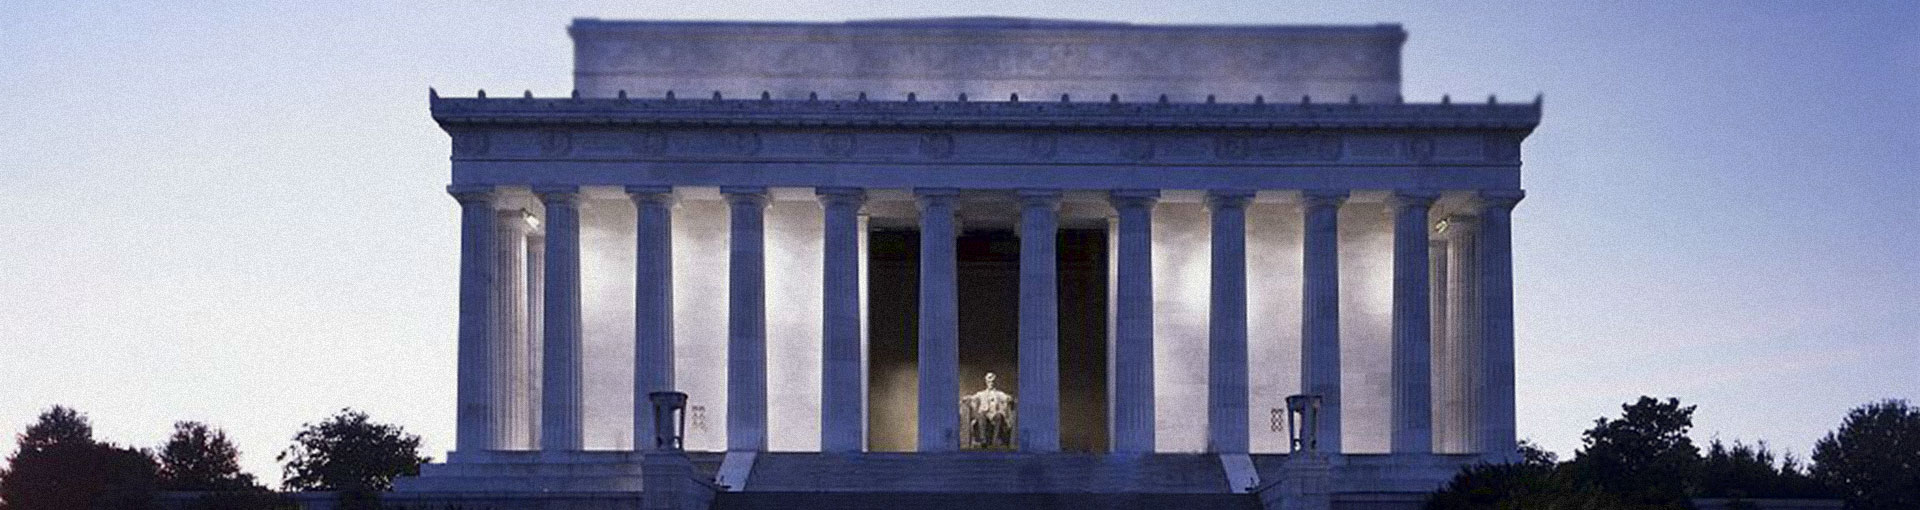 Lincoln Memorial monument at twilight.